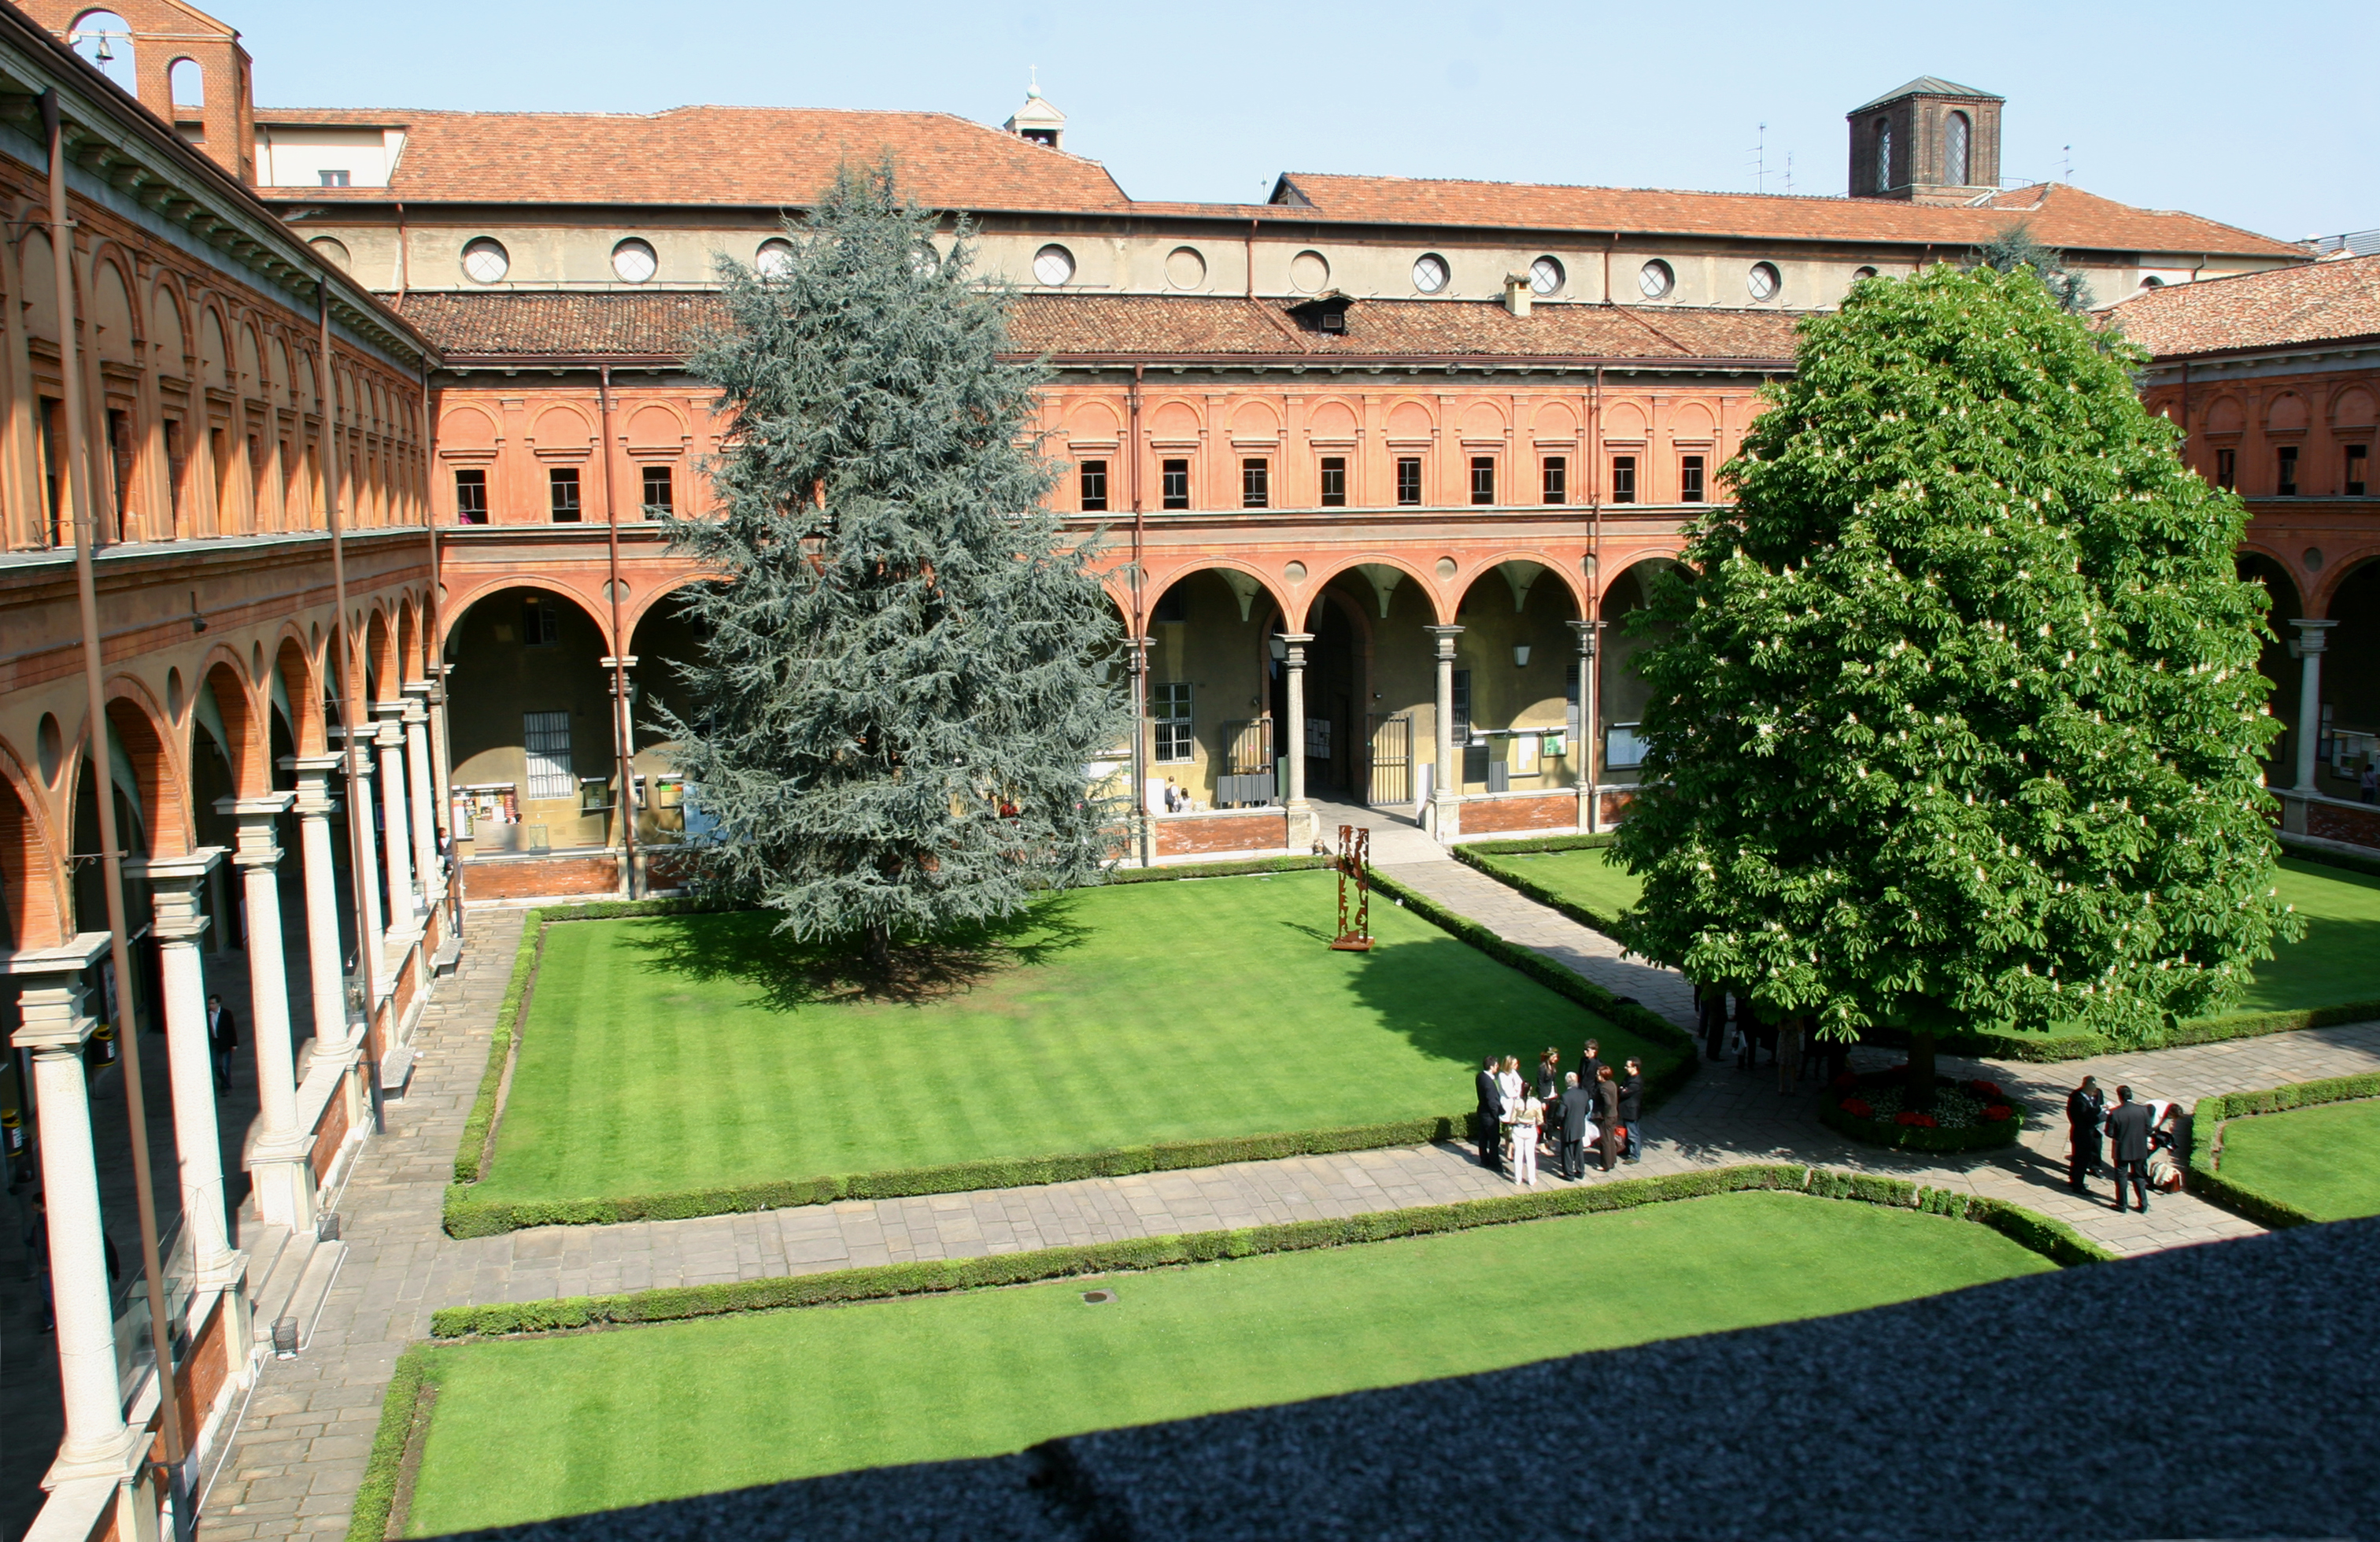 Universit cattolica del sacro cuore milan italy for Universita milano